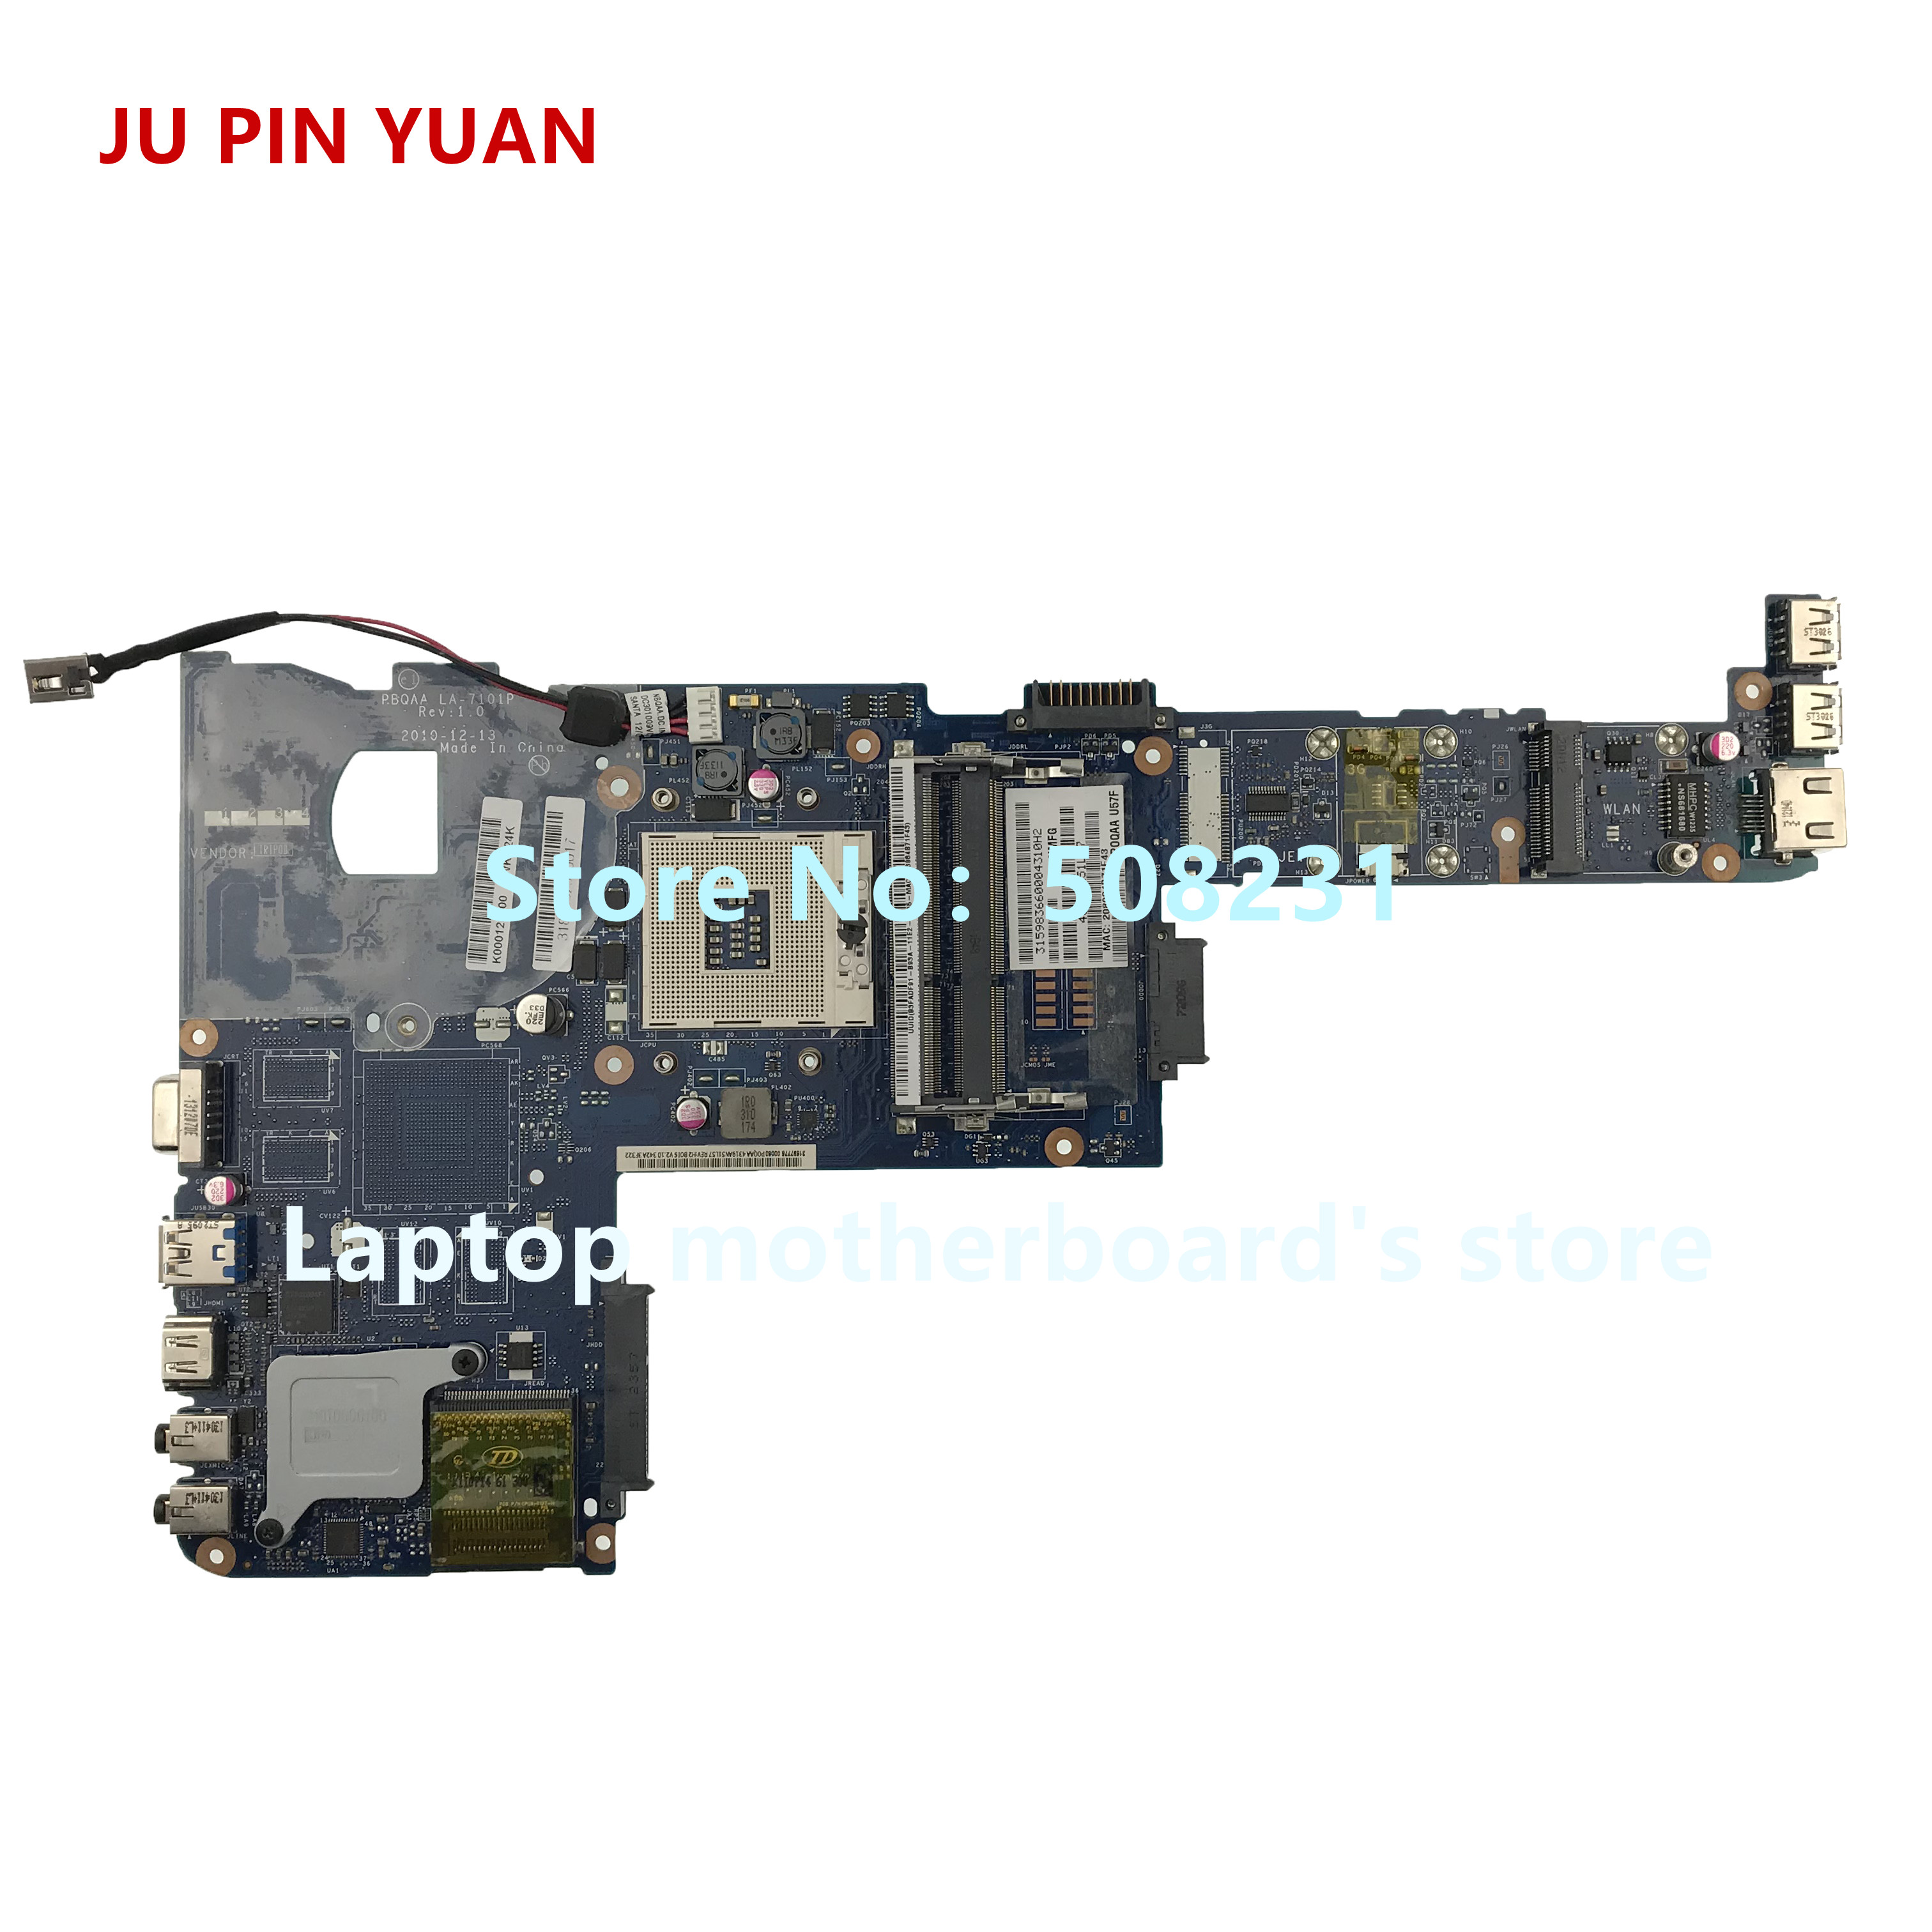 JU PIN YUAN K000123400 LA-7101P mainboard for toshiba satellite P700 P740 P745  laptop motherboard fully Tested